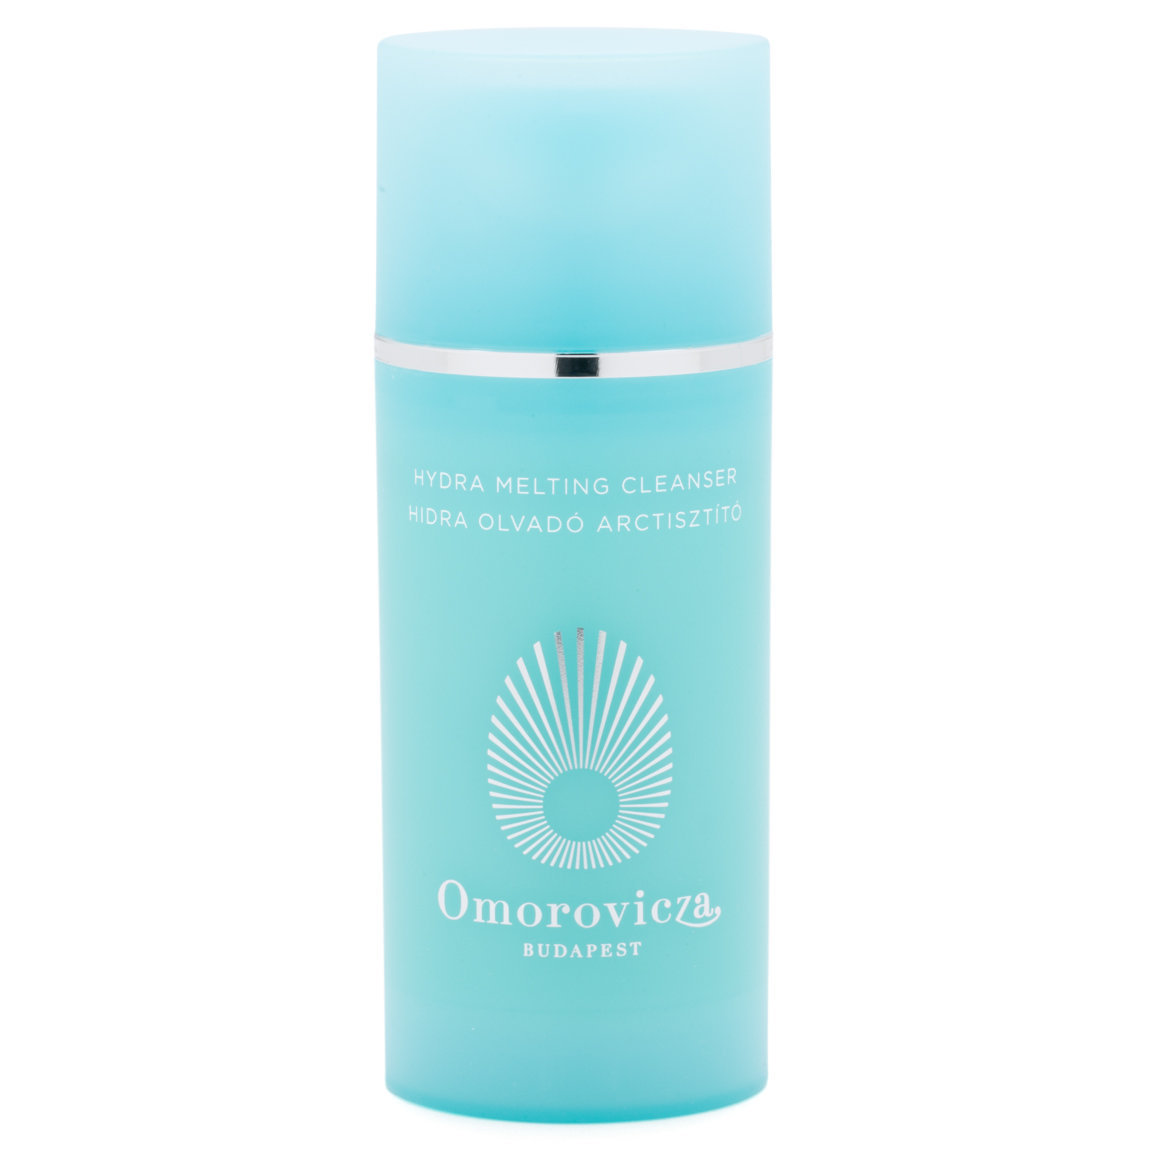 Omorovicza Hydra Melting Cleanser product smear.